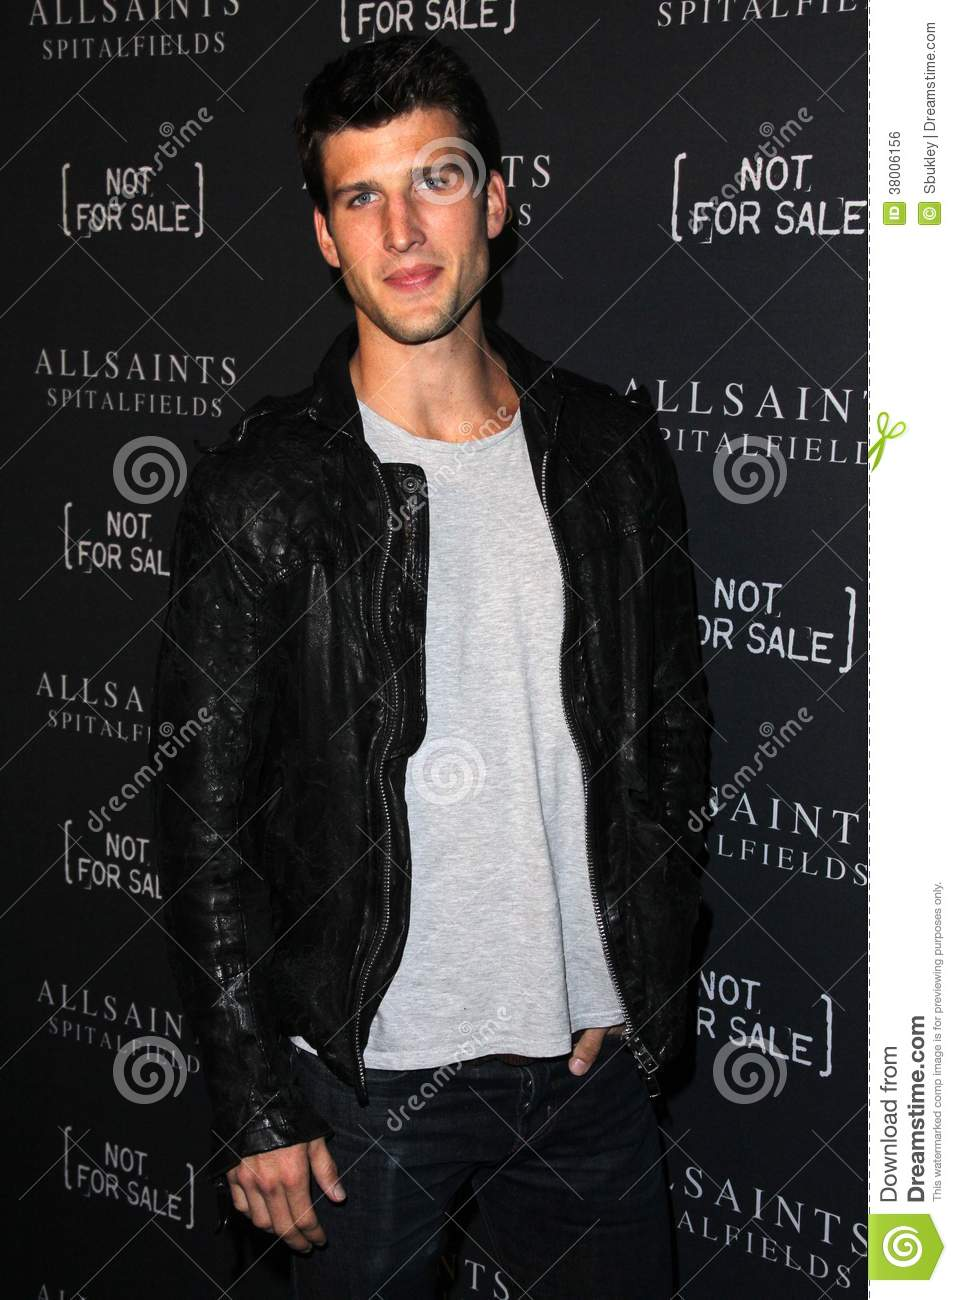 parker young recruitmentparker young height, parker young instagram, parker young geoff stults, parker young is he gay, parker young insta, parker young partner, parker young, parker young arrow, parker young enlisted, parker young construction, parker young imdb, parker young photography, parker young dating, parker young & antinoff llc, parker young twitter, parker young recruitment, parker young calvin klein, parker young construction complaints, parker young facebook